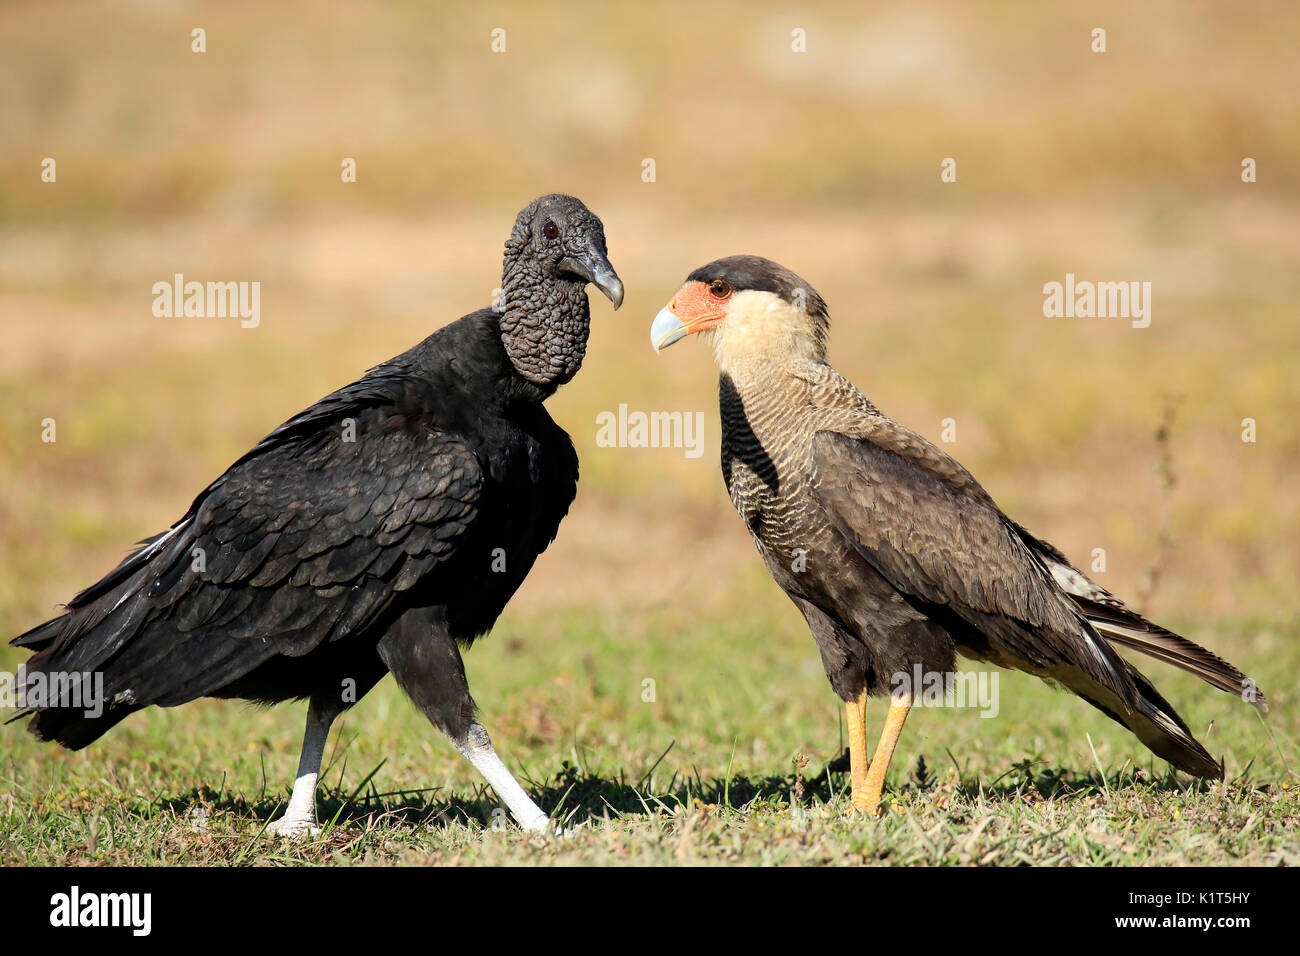 Black Vulture (Coragyps atratus) and Southern Caracara (Caracara plancus), Face to Face on the Ground. Rio Claro, - Stock Image